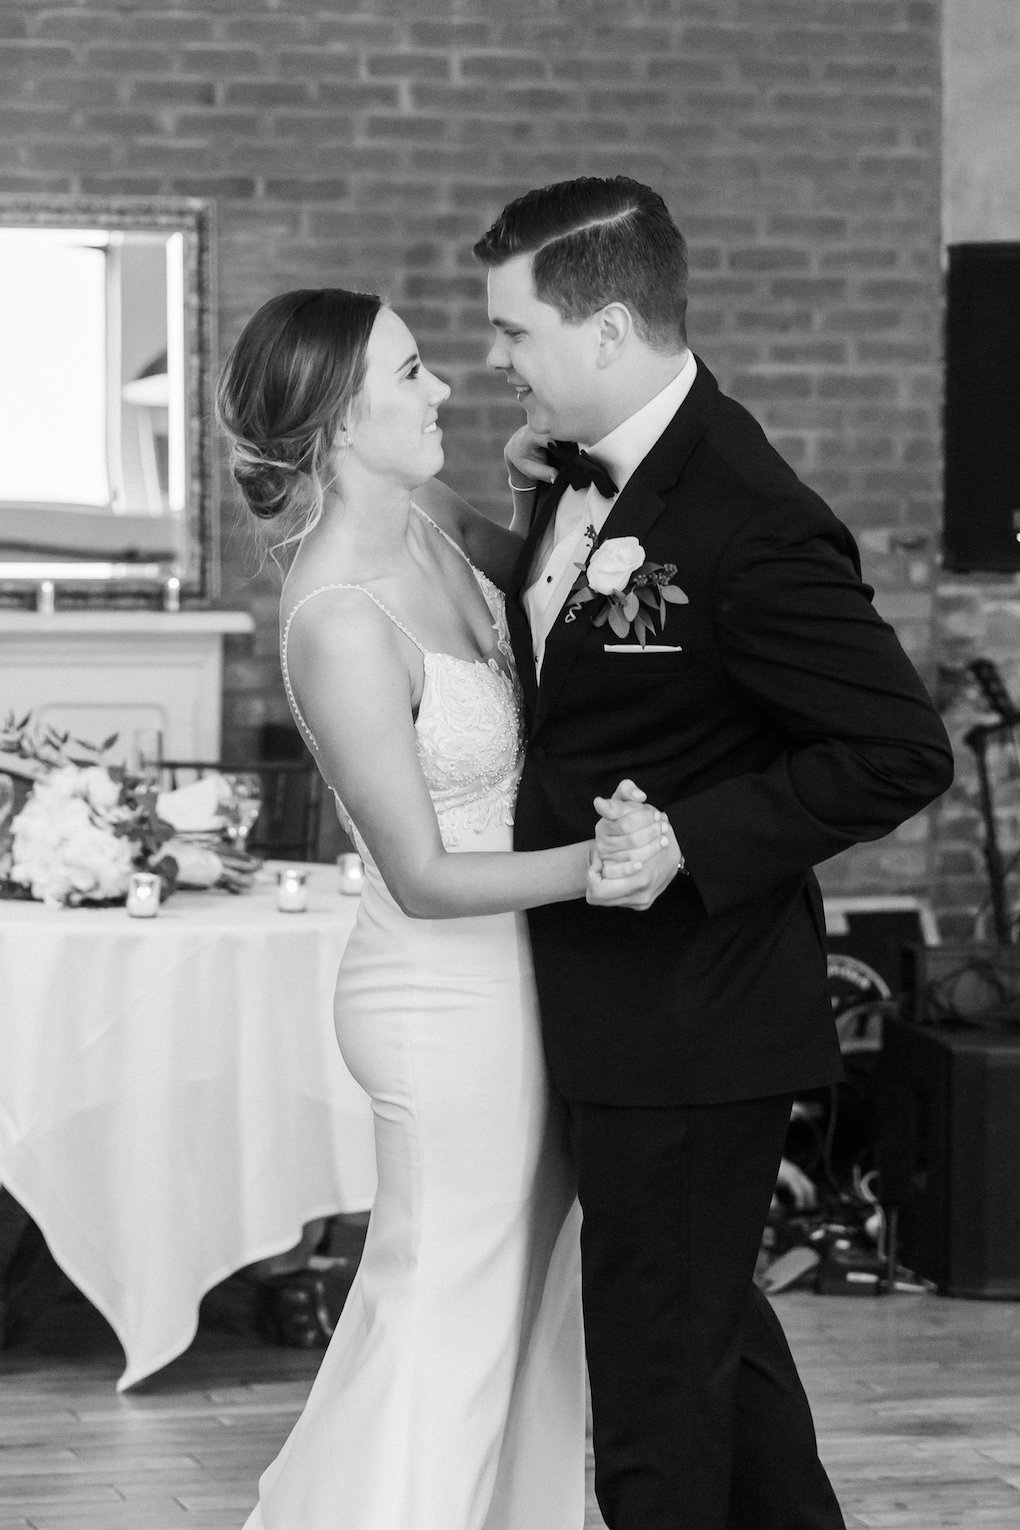 Bride and groom share first dance for chic wedding in Buffalo, NY planned by Exhale Events. Find more timeless wedding inspiration at exhale-events.com!